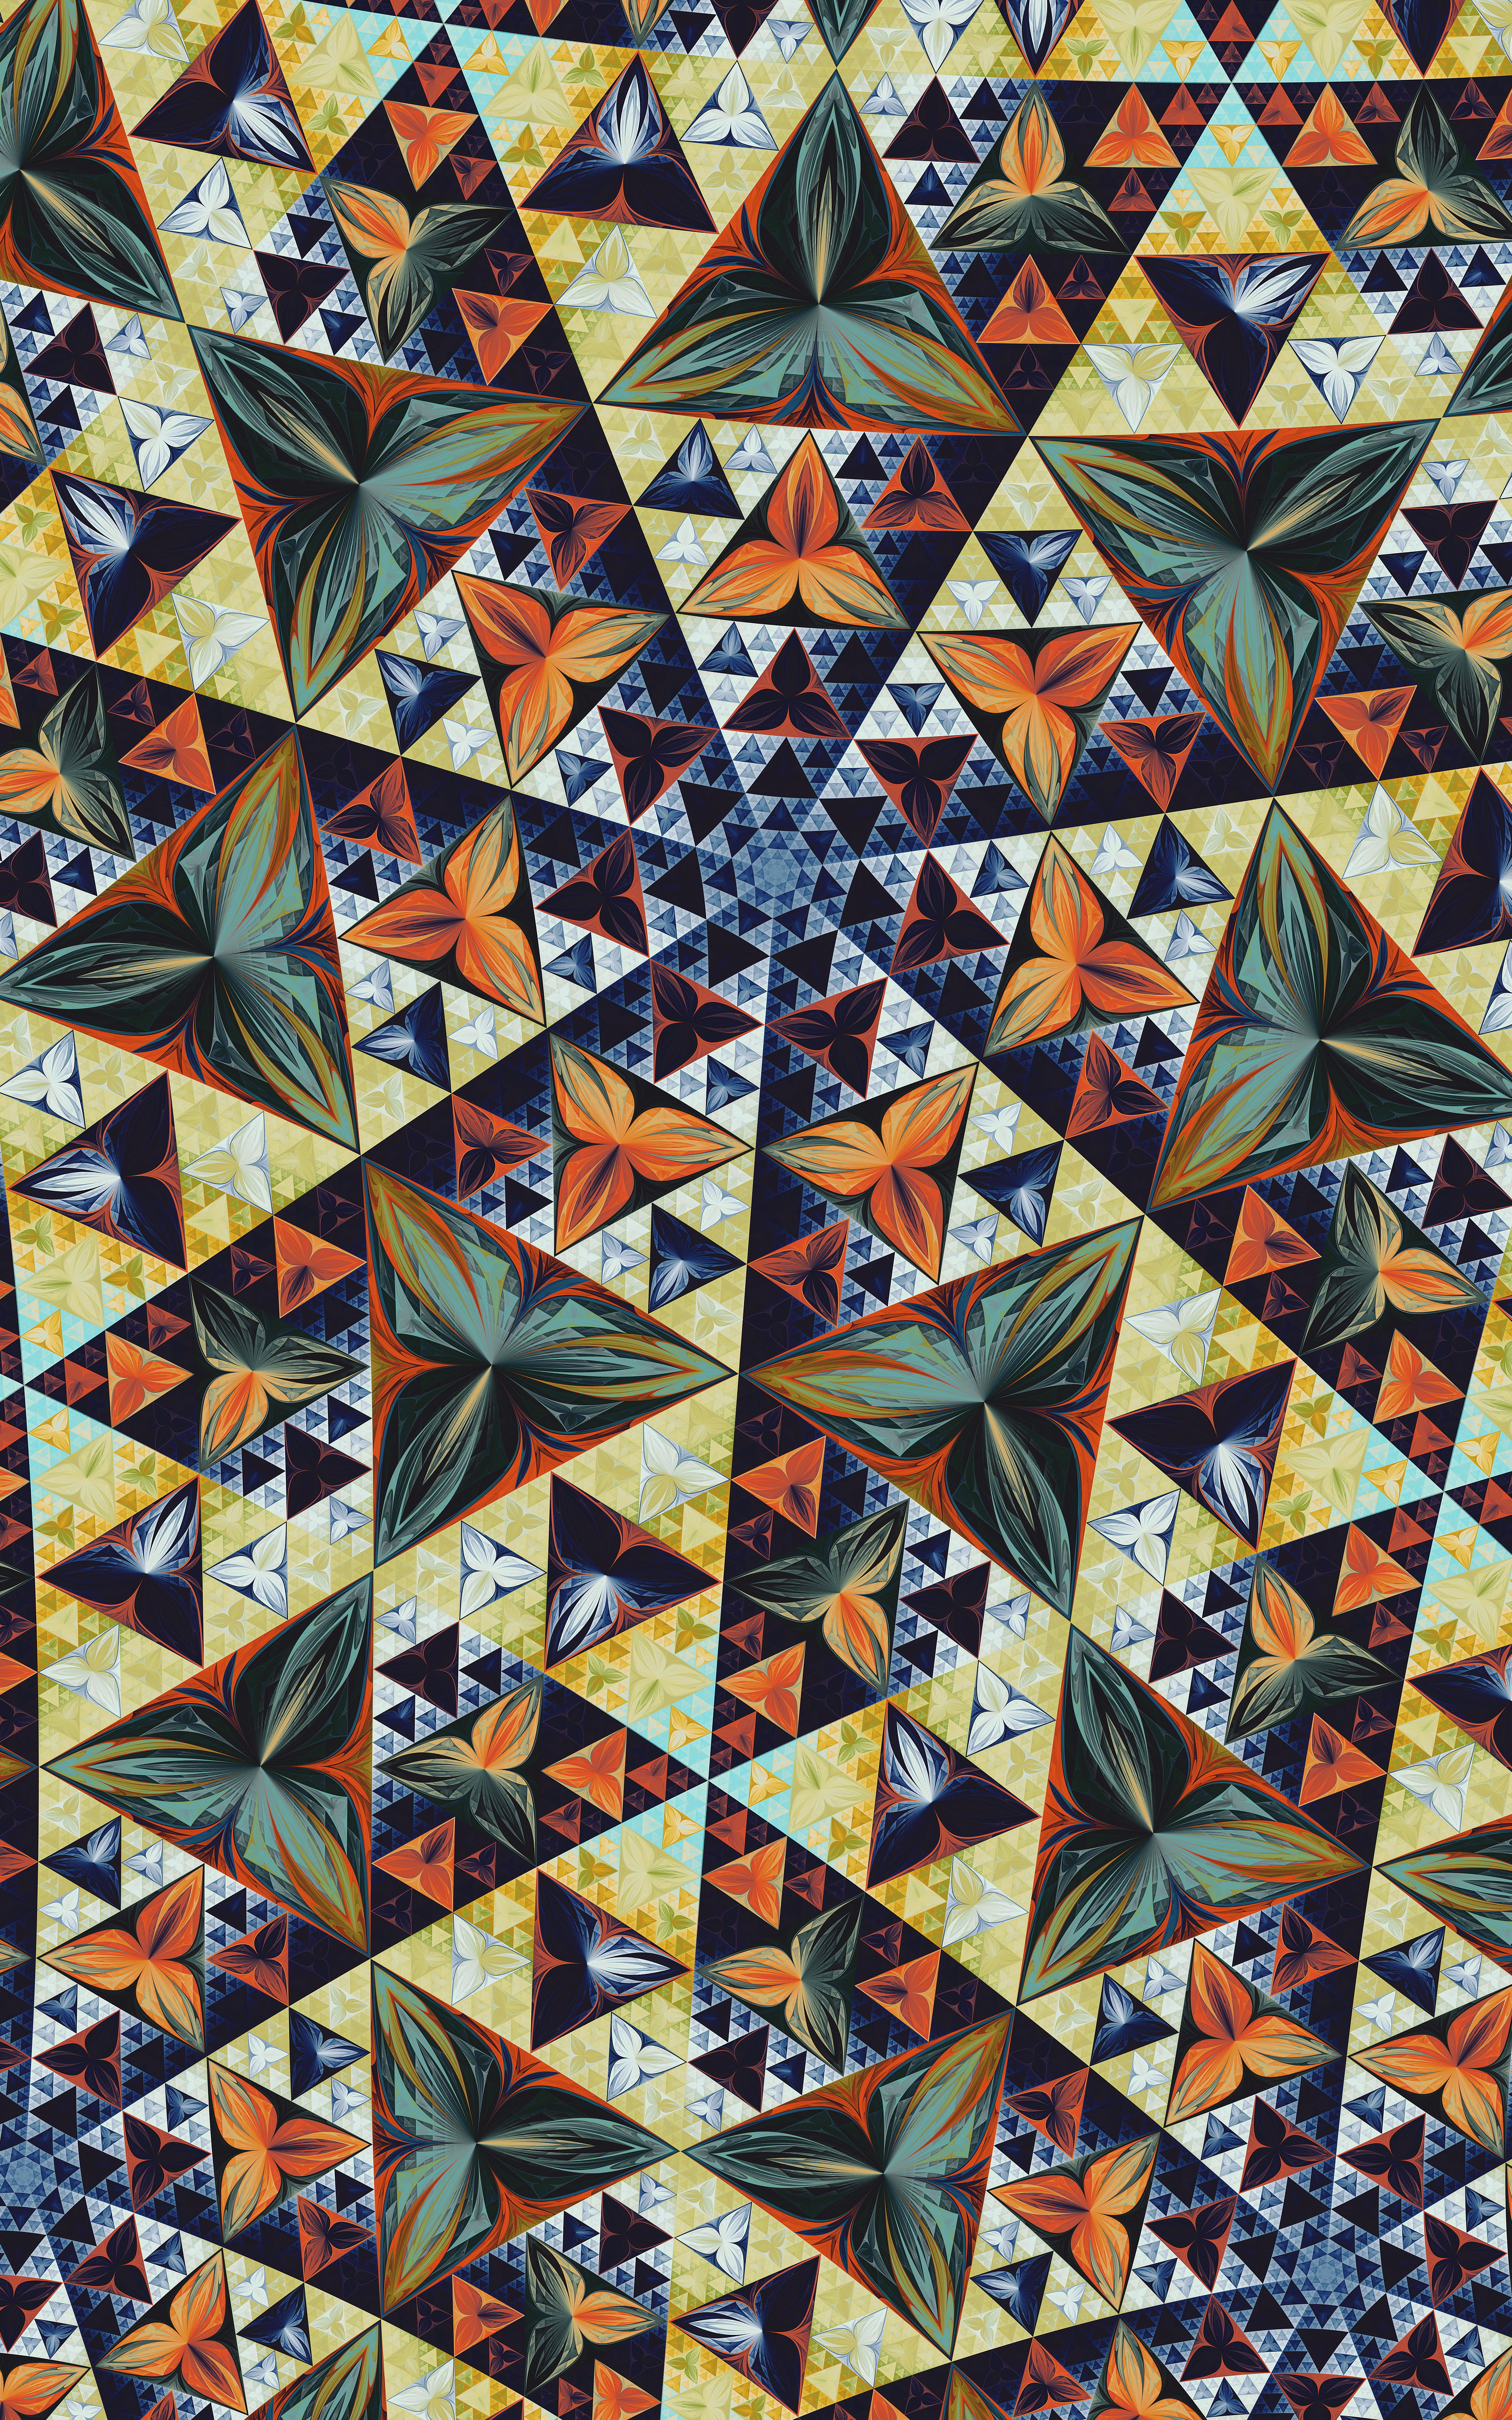 68740 download wallpaper Textures, Texture, Fractal, Kaleidoscope, Triangles, Pattern, Symmetry screensavers and pictures for free